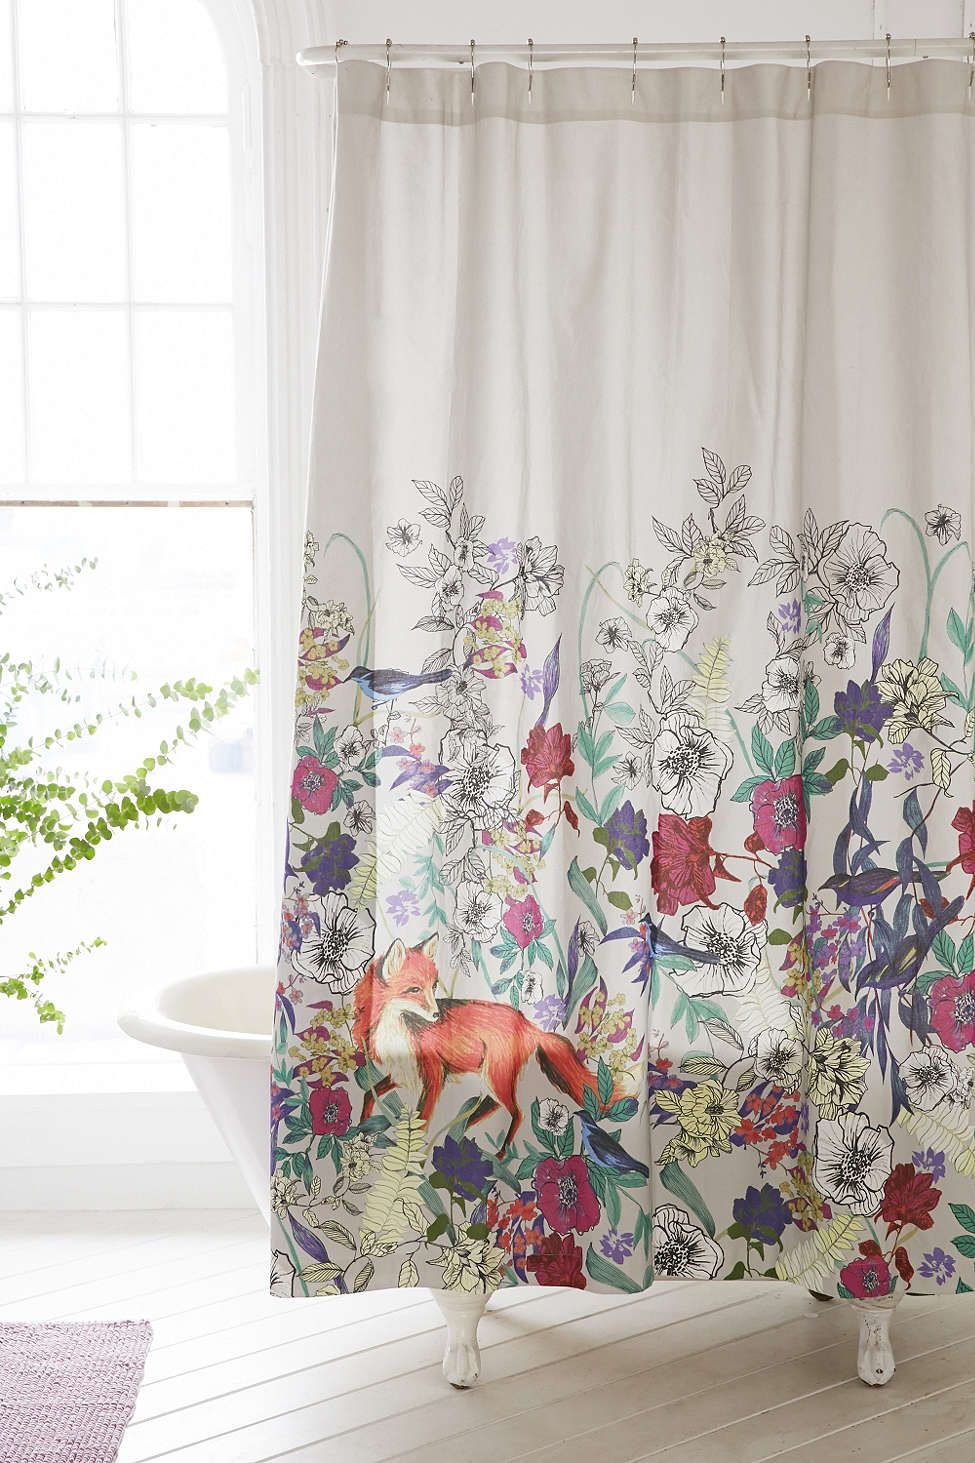 Plum Bow Forest Critters Shower Curtain Pretty Shower Curtains